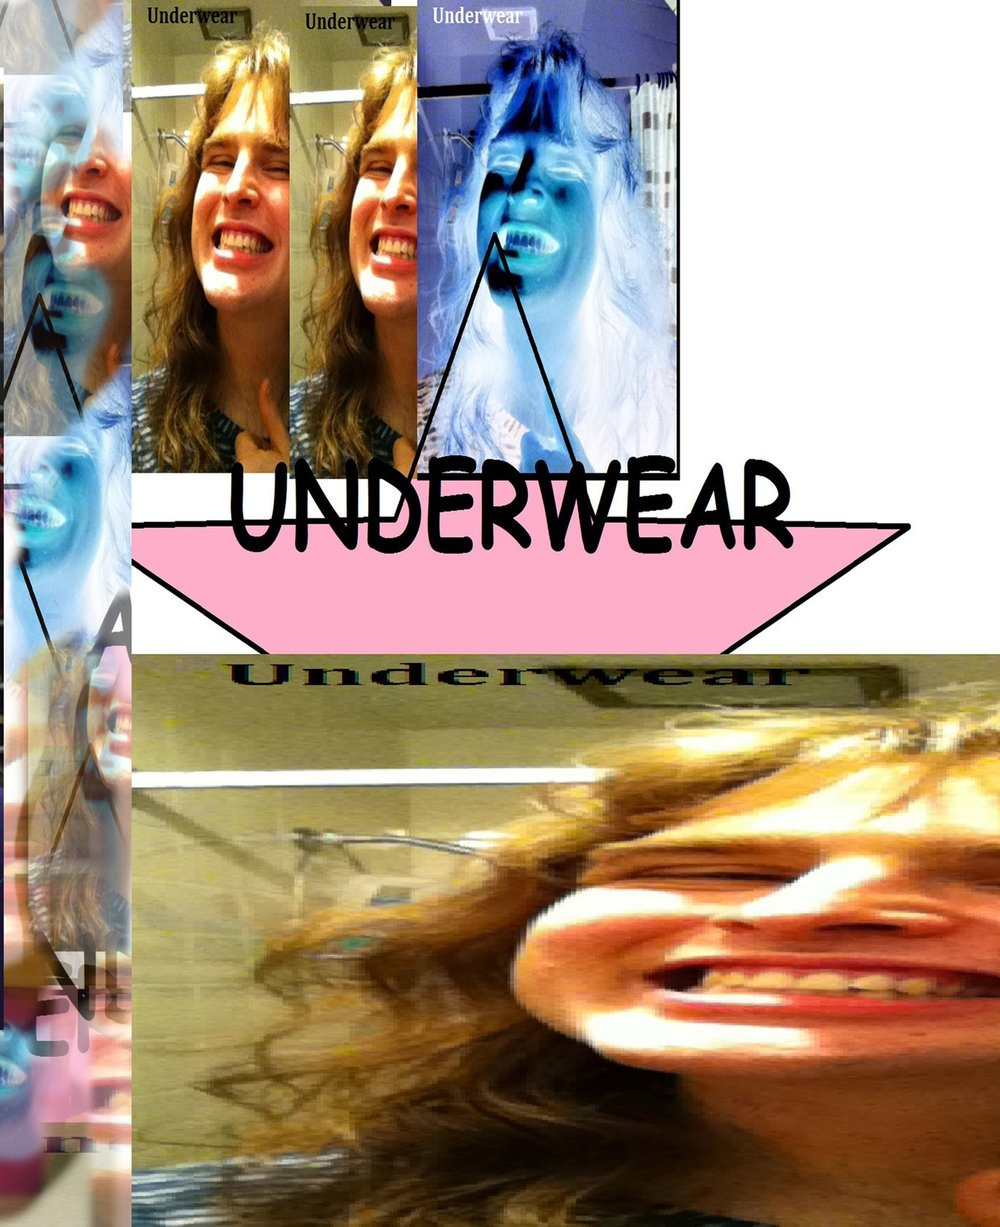 CD: Underwear / Self-Titled - $5Includes download code.